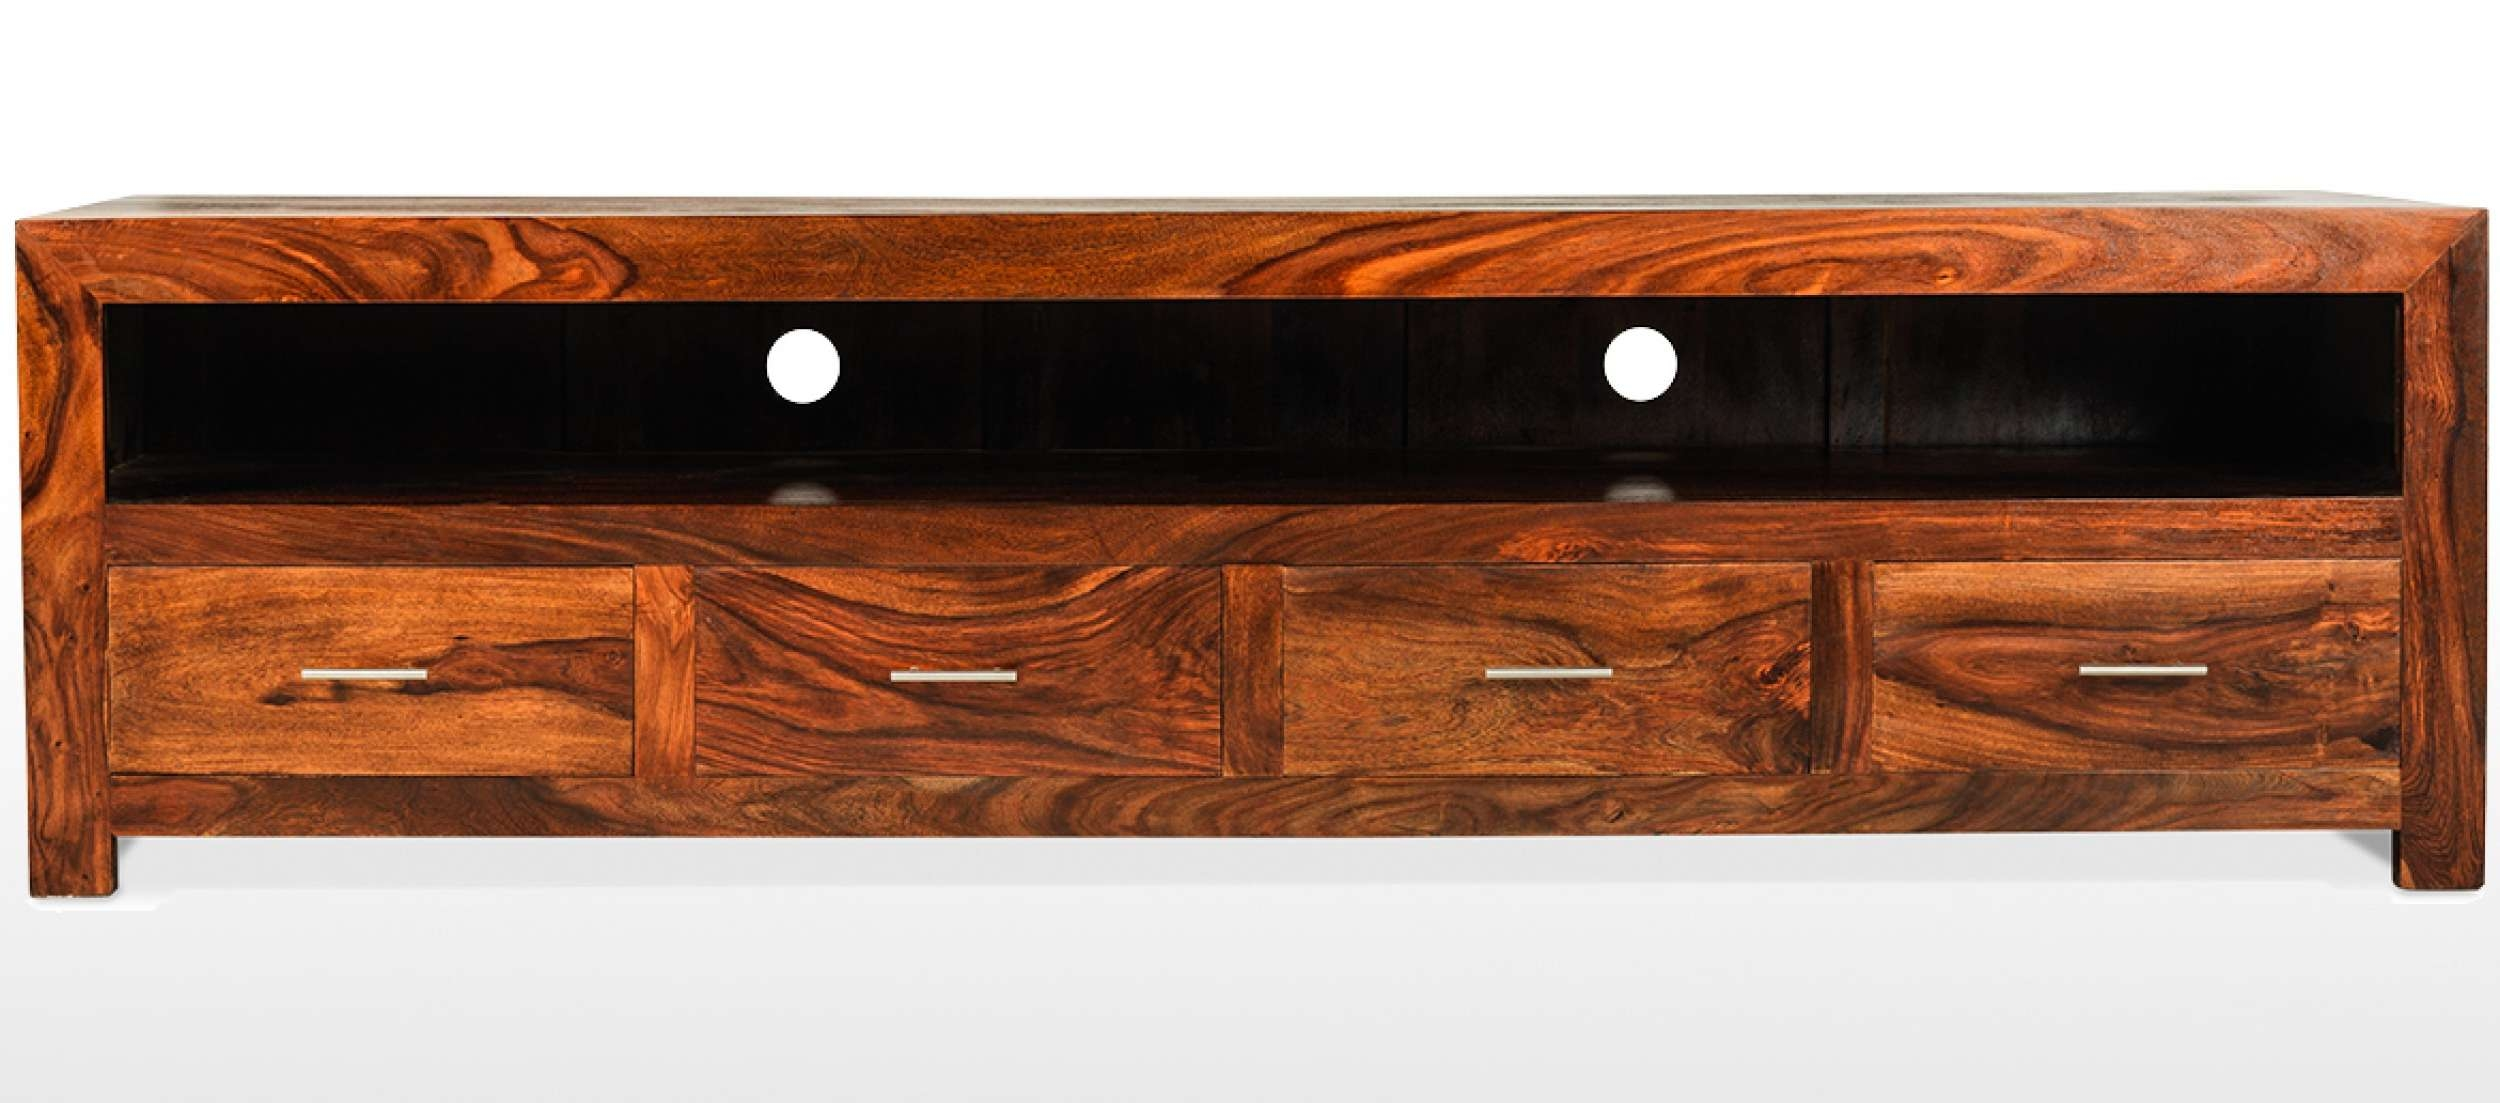 Cube Sheesham Long Plasma Tv Cabinet | Quercus Living Inside Long Tv Cabinets Furniture (View 8 of 20)